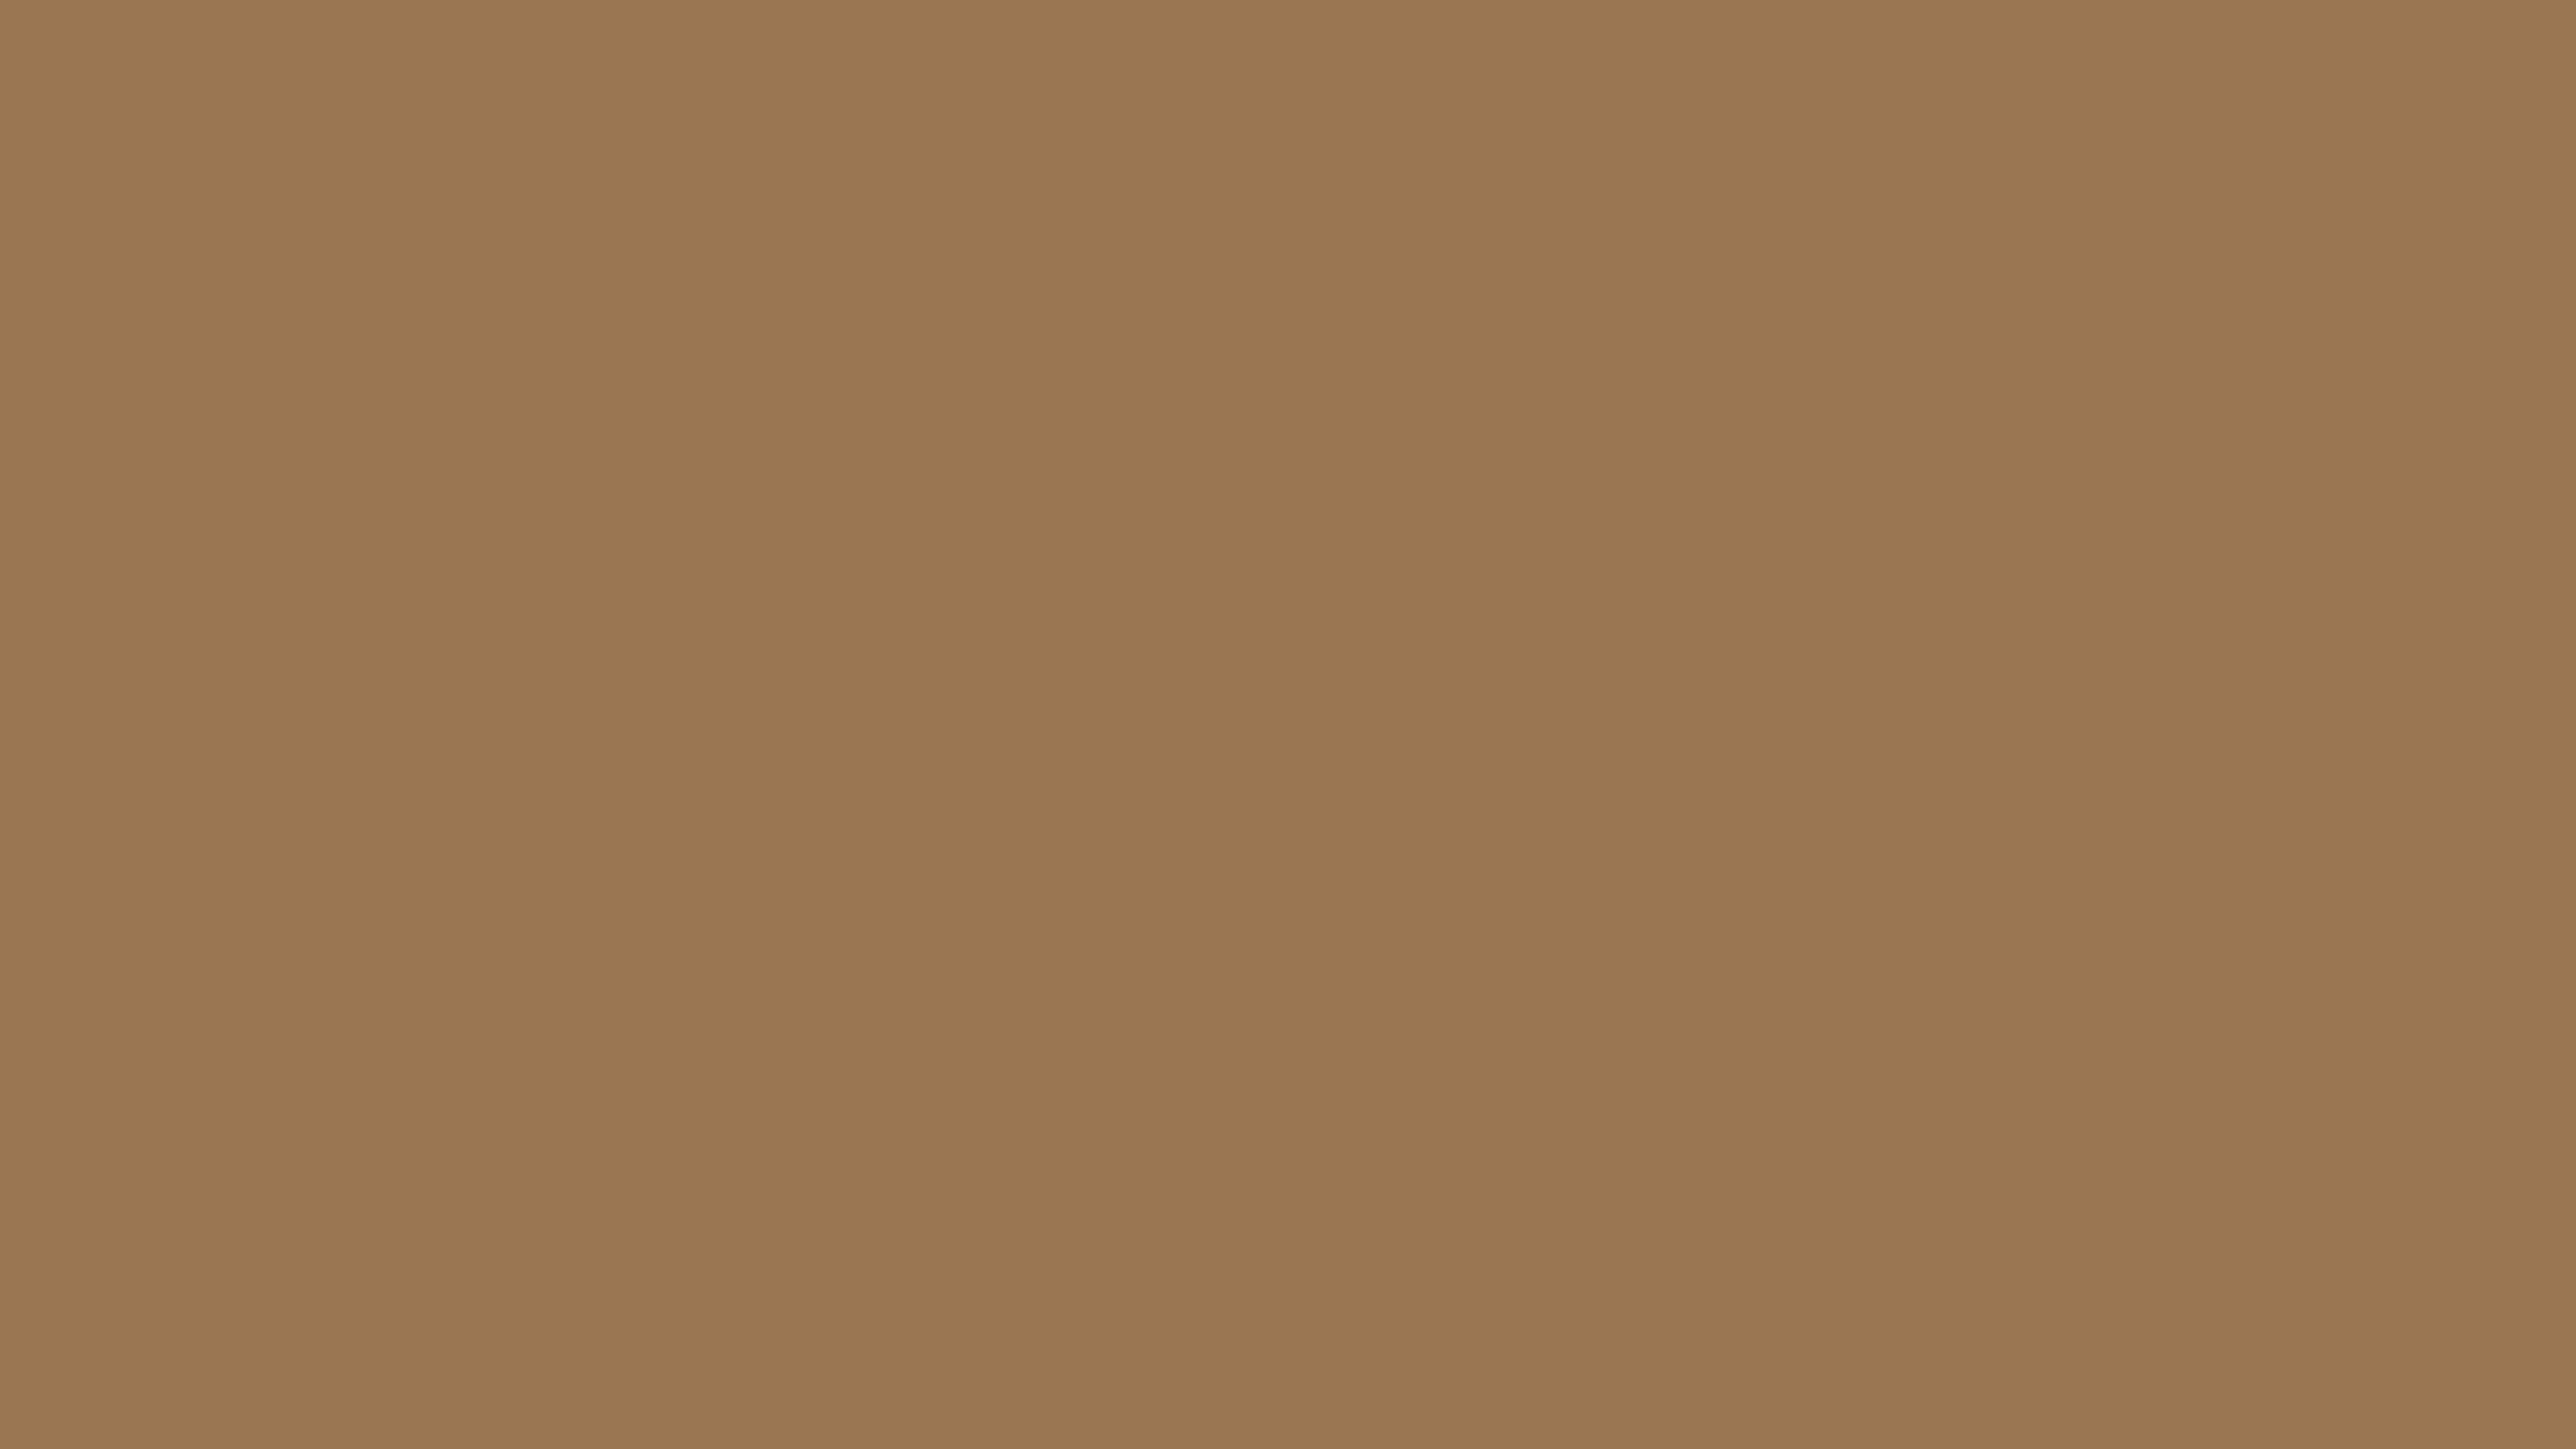 5120x2880 Dirt Solid Color Background